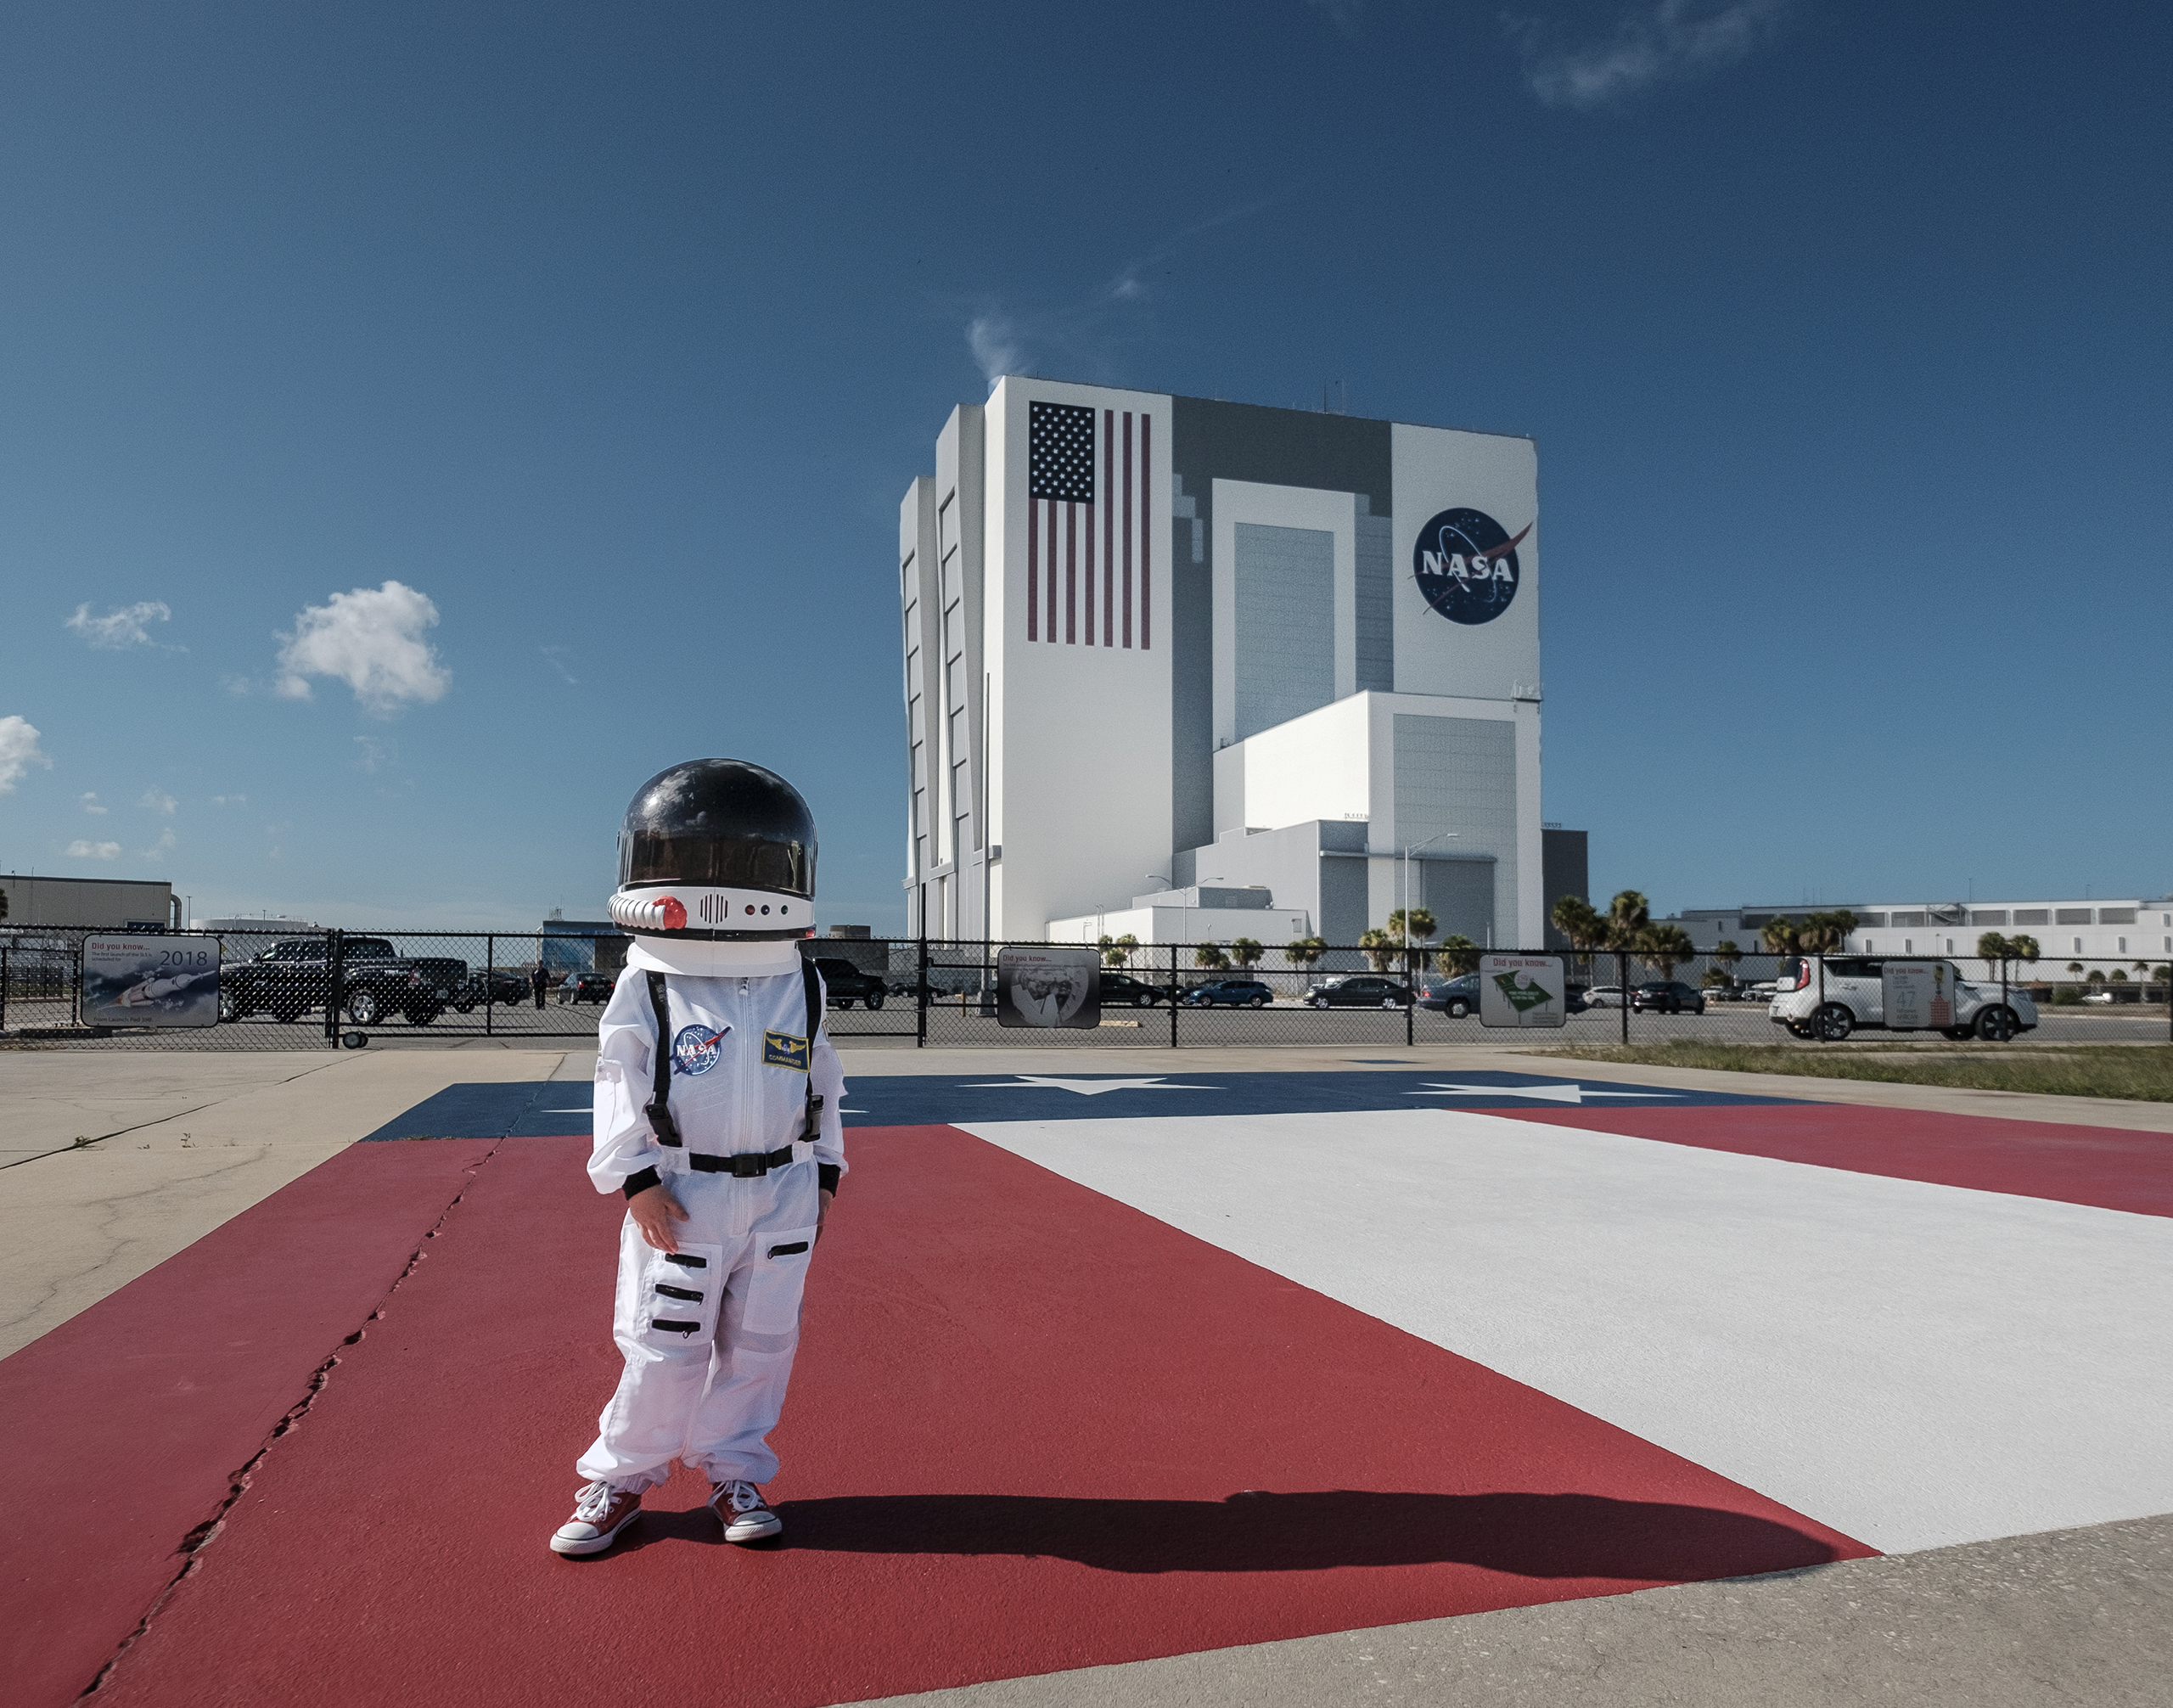 Harrison Sheldon stands on the Apollo gantry at the Kennedy Space Center, July 18, 2016.                                                              Harrison was invited to the Visitor center for a special visit as part of his father, Aaron Sheldon's, photography project Small Steps Are Giant Leaps.